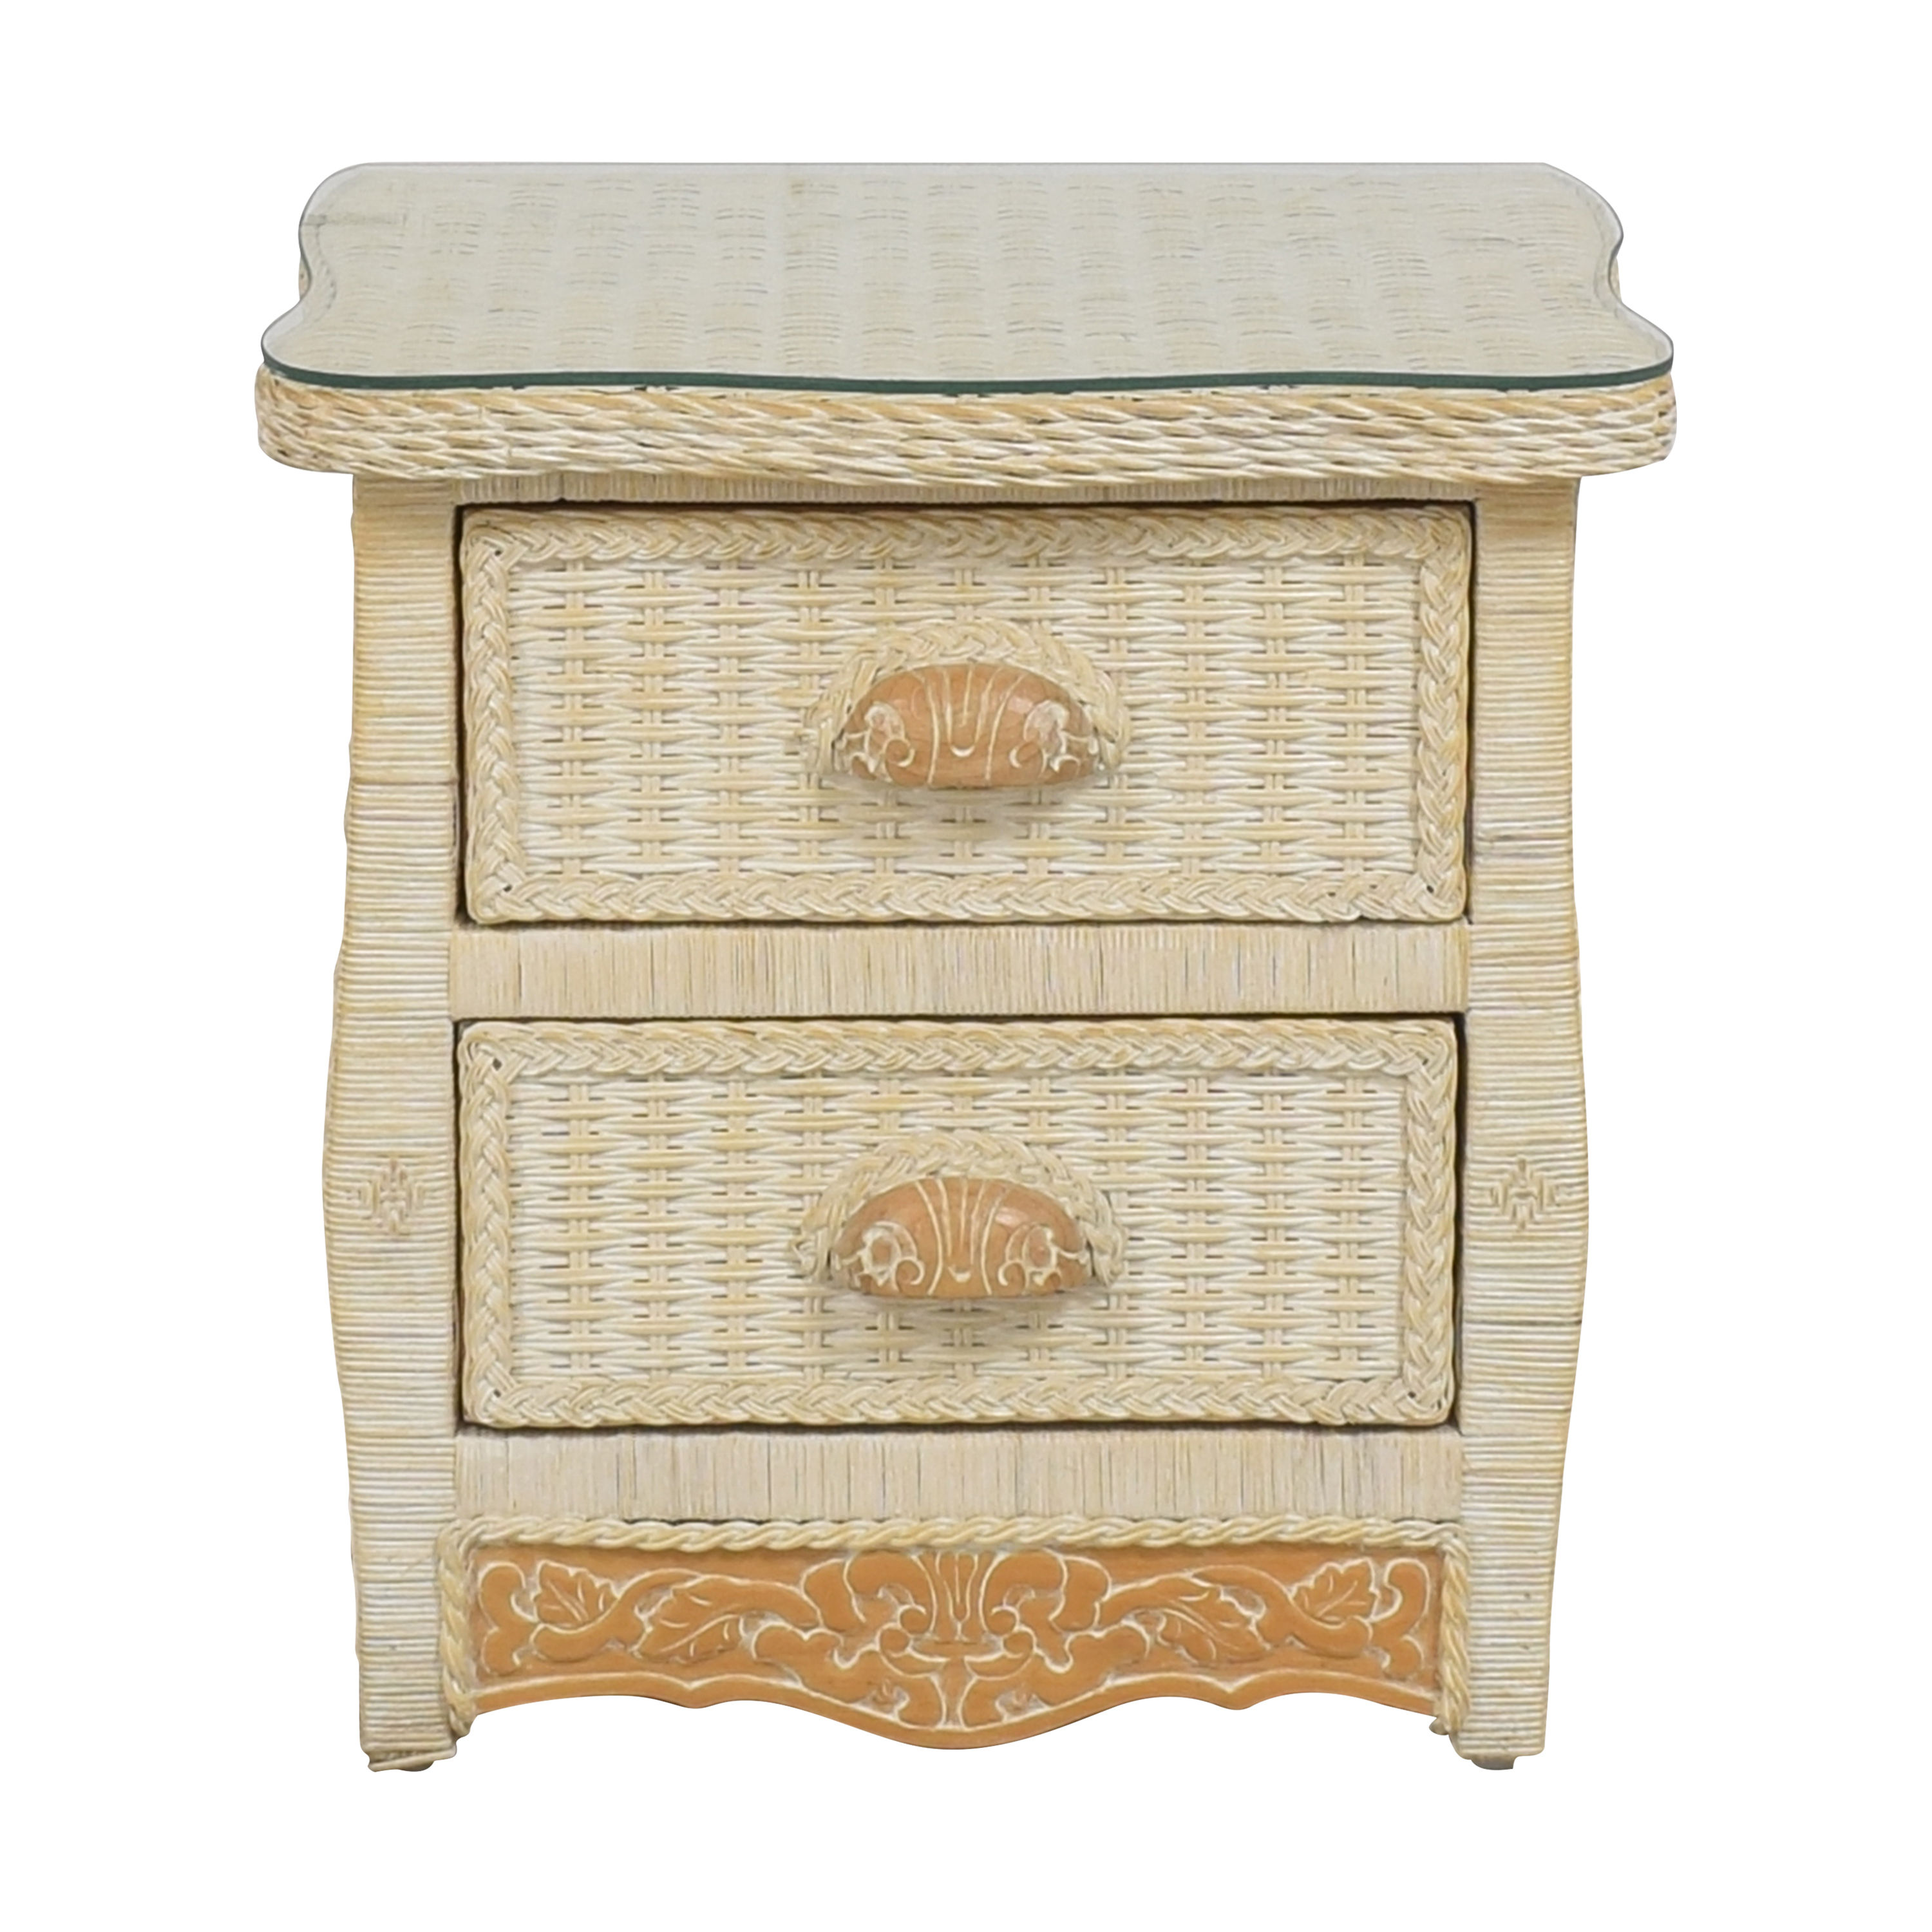 Pier 1 Pier 1 Jamaica Collection Nightstand coupon